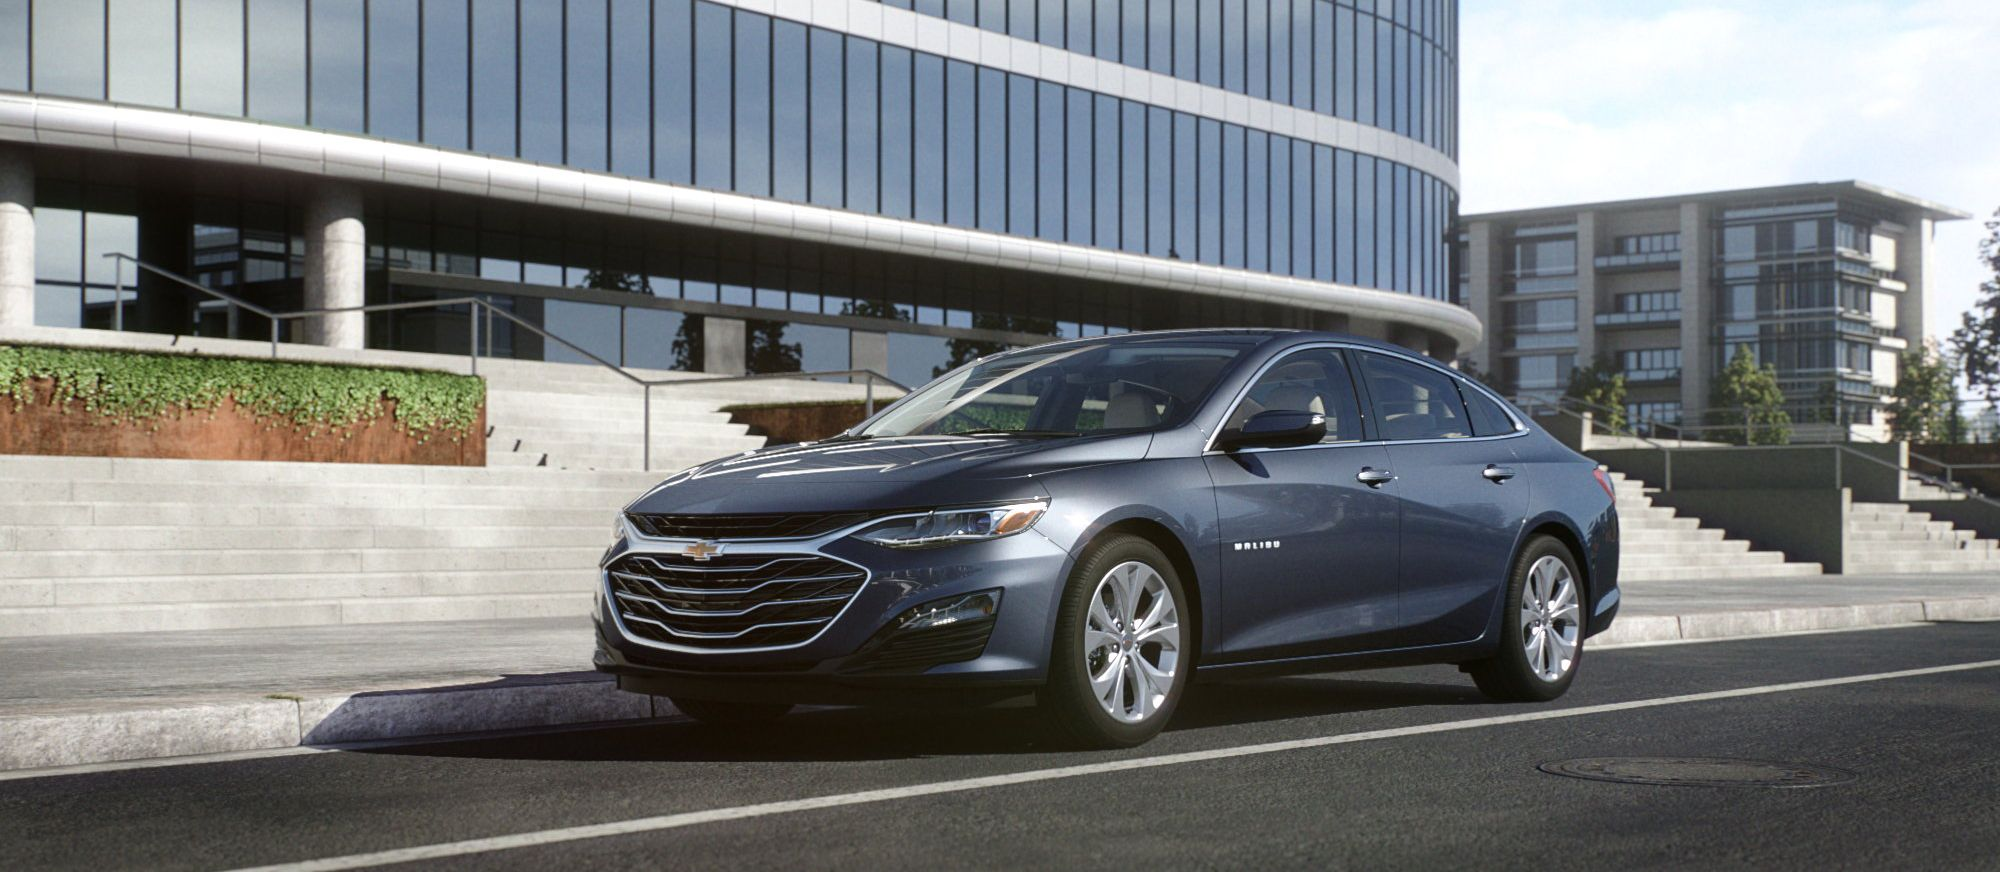 2019 Chevrolet Malibu for Sale near Carol Stream, IL